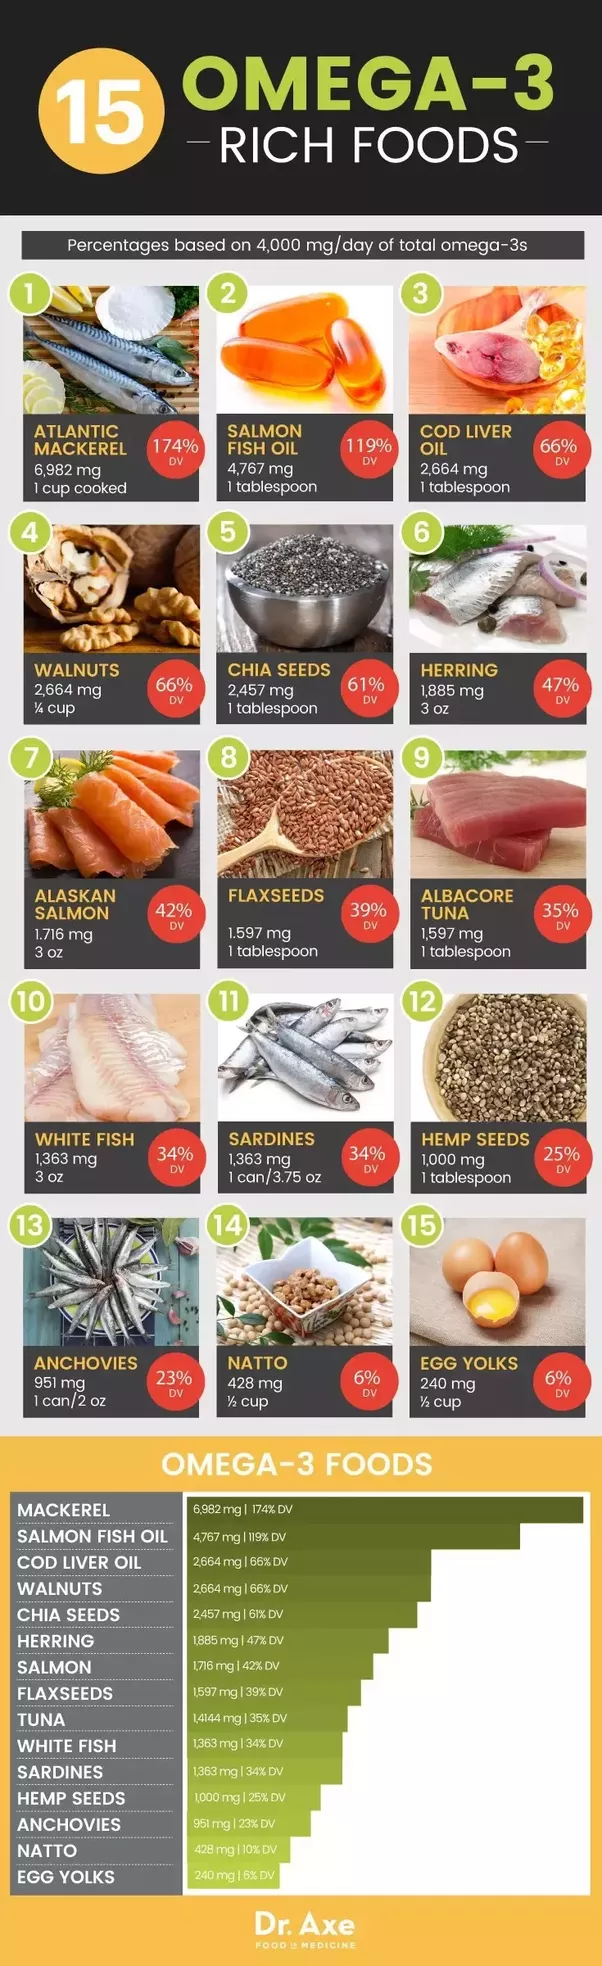 Watch What Foods Are Full Of Omega 3s video